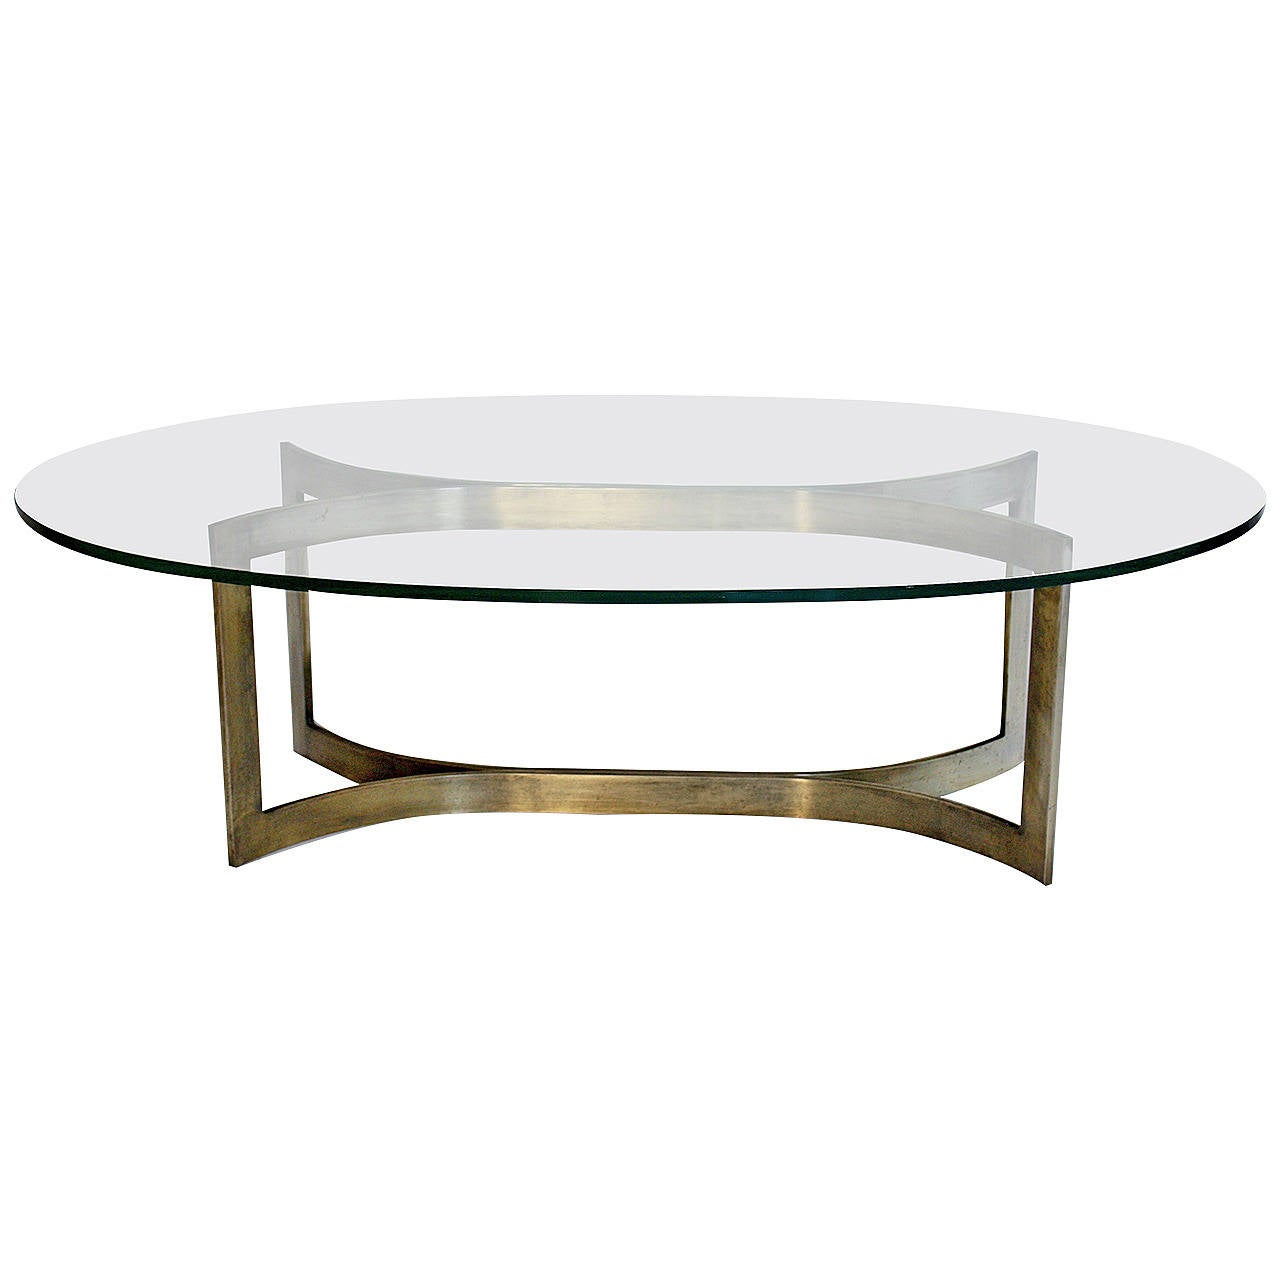 Baker bronze and glass oval cocktail table at 1stdibs Baker coffee table